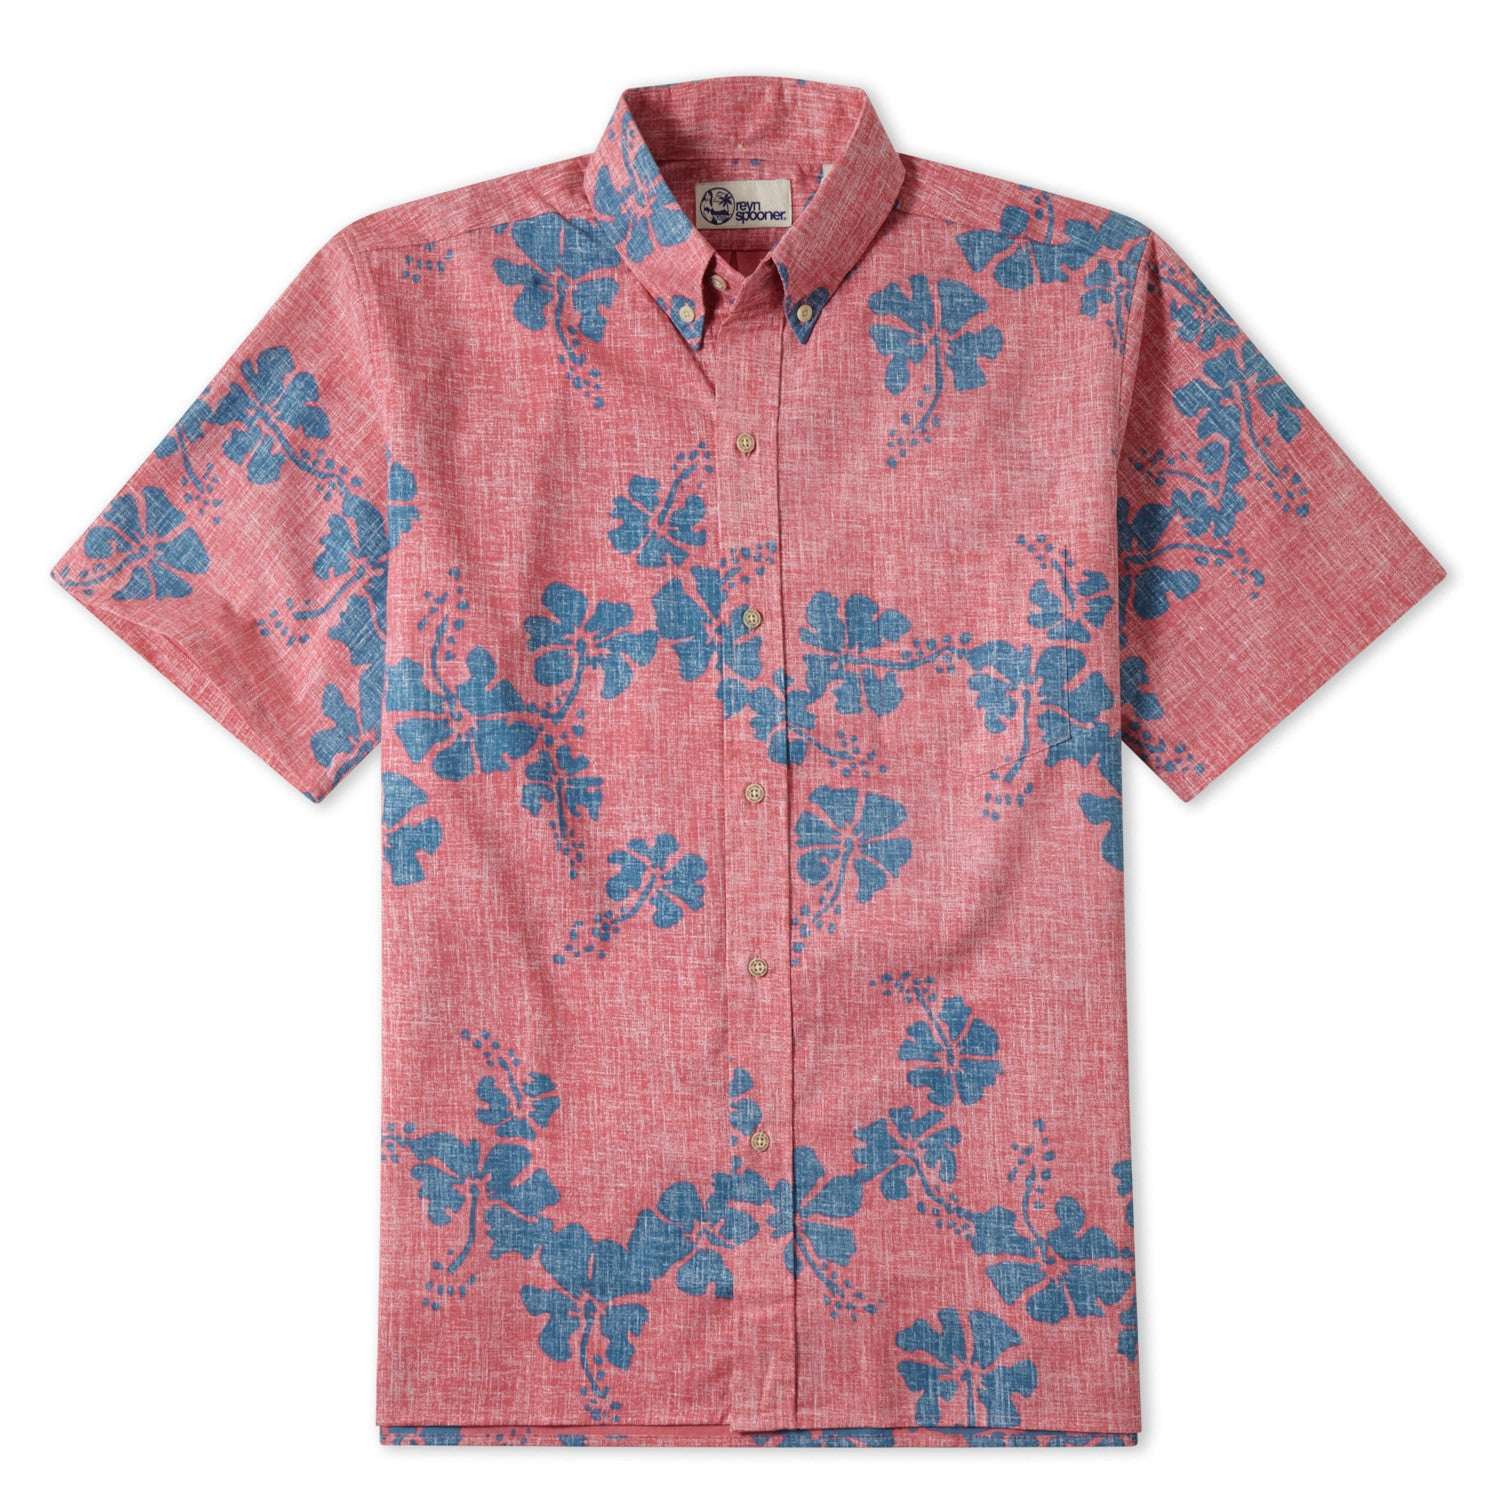 50Th State Flower / Classic Fit Button Front Shirt, Cotton/Polyester, For Men, 2XL, Pink, From Reyn Spooner